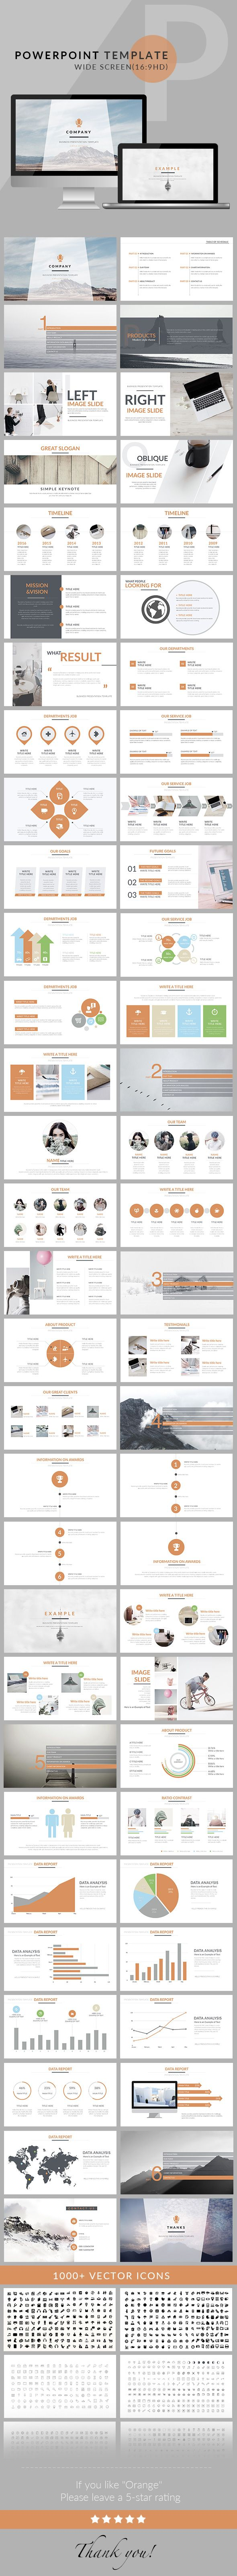 Orange - Clean trend business PowerPoint Template. Download here: https://graphicriver.net/item/orange-clean-trend-business-powerpoint-templates/17183115?ref=ksioks